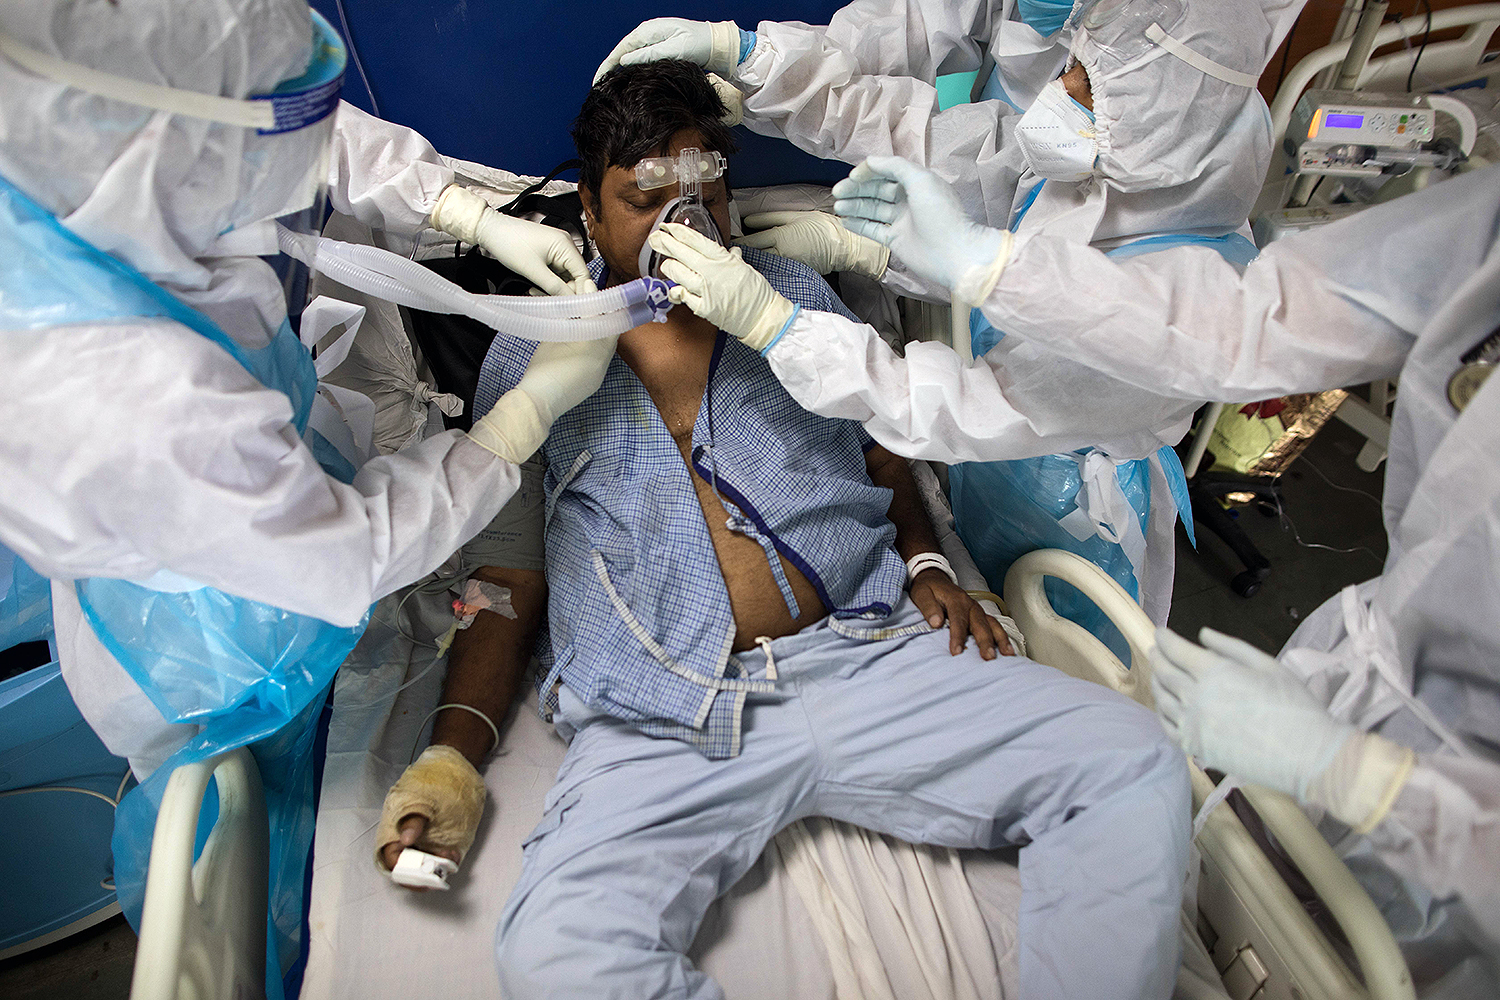 Doctors and nurses take care of a COVID-19 patient in the Intensive Care Unit of Sharda Hospital in Greater Noida, India, on July 15. XAVIER GALIANA/AFP via Getty Images